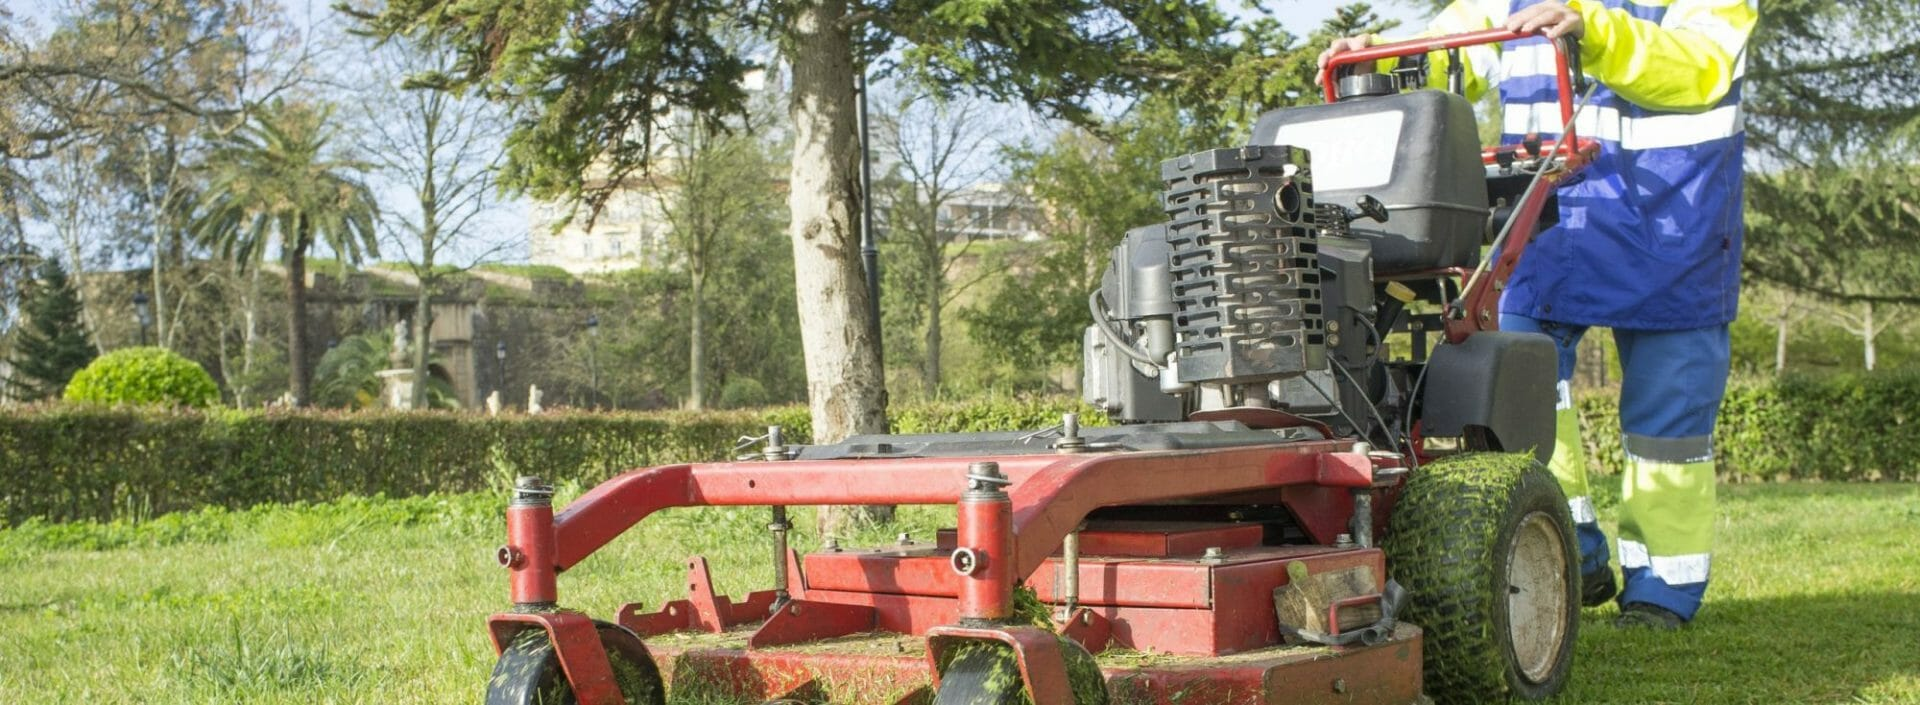 Gardener mowing the grass with engine powered mower at urban park. This is a mid-size walk-behind rotary model